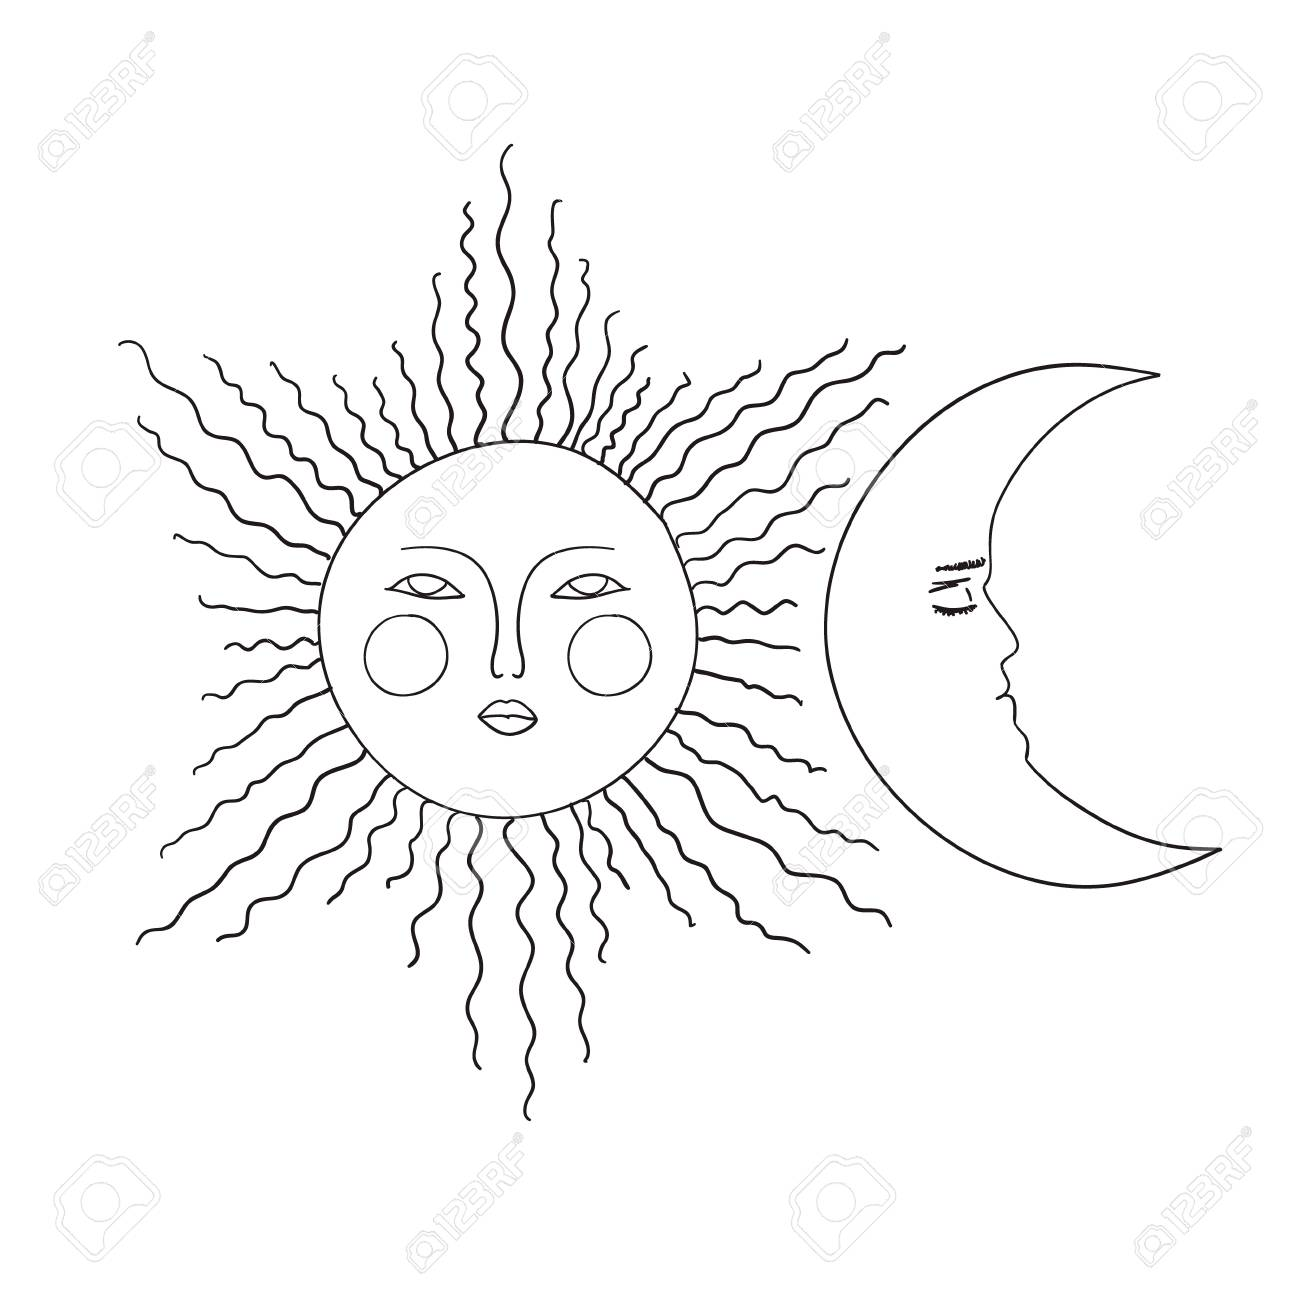 Free Sun Clipart Black and White Pictures - Clipartix in 2020   Clip art, Clipart  black and white, Black and white pictures